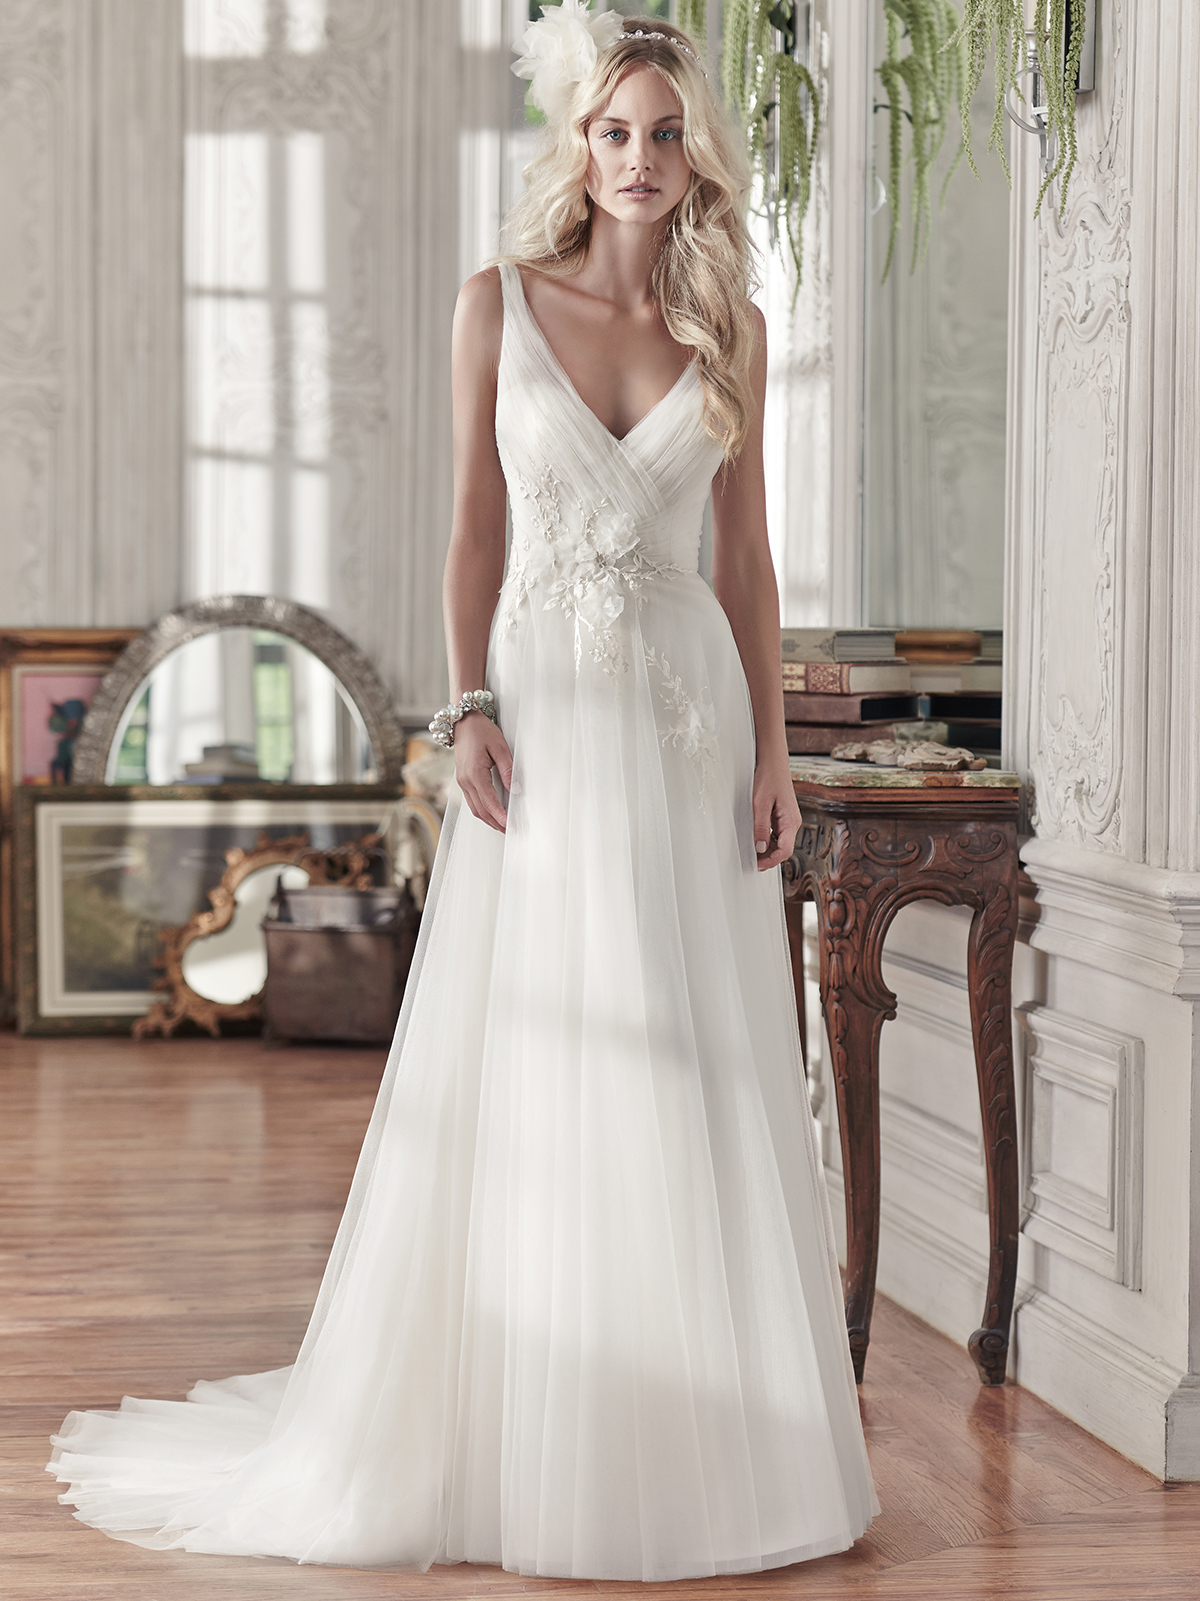 Maggie Sottero Ladelle V-neck Tulle A-line Bridal Dress ...